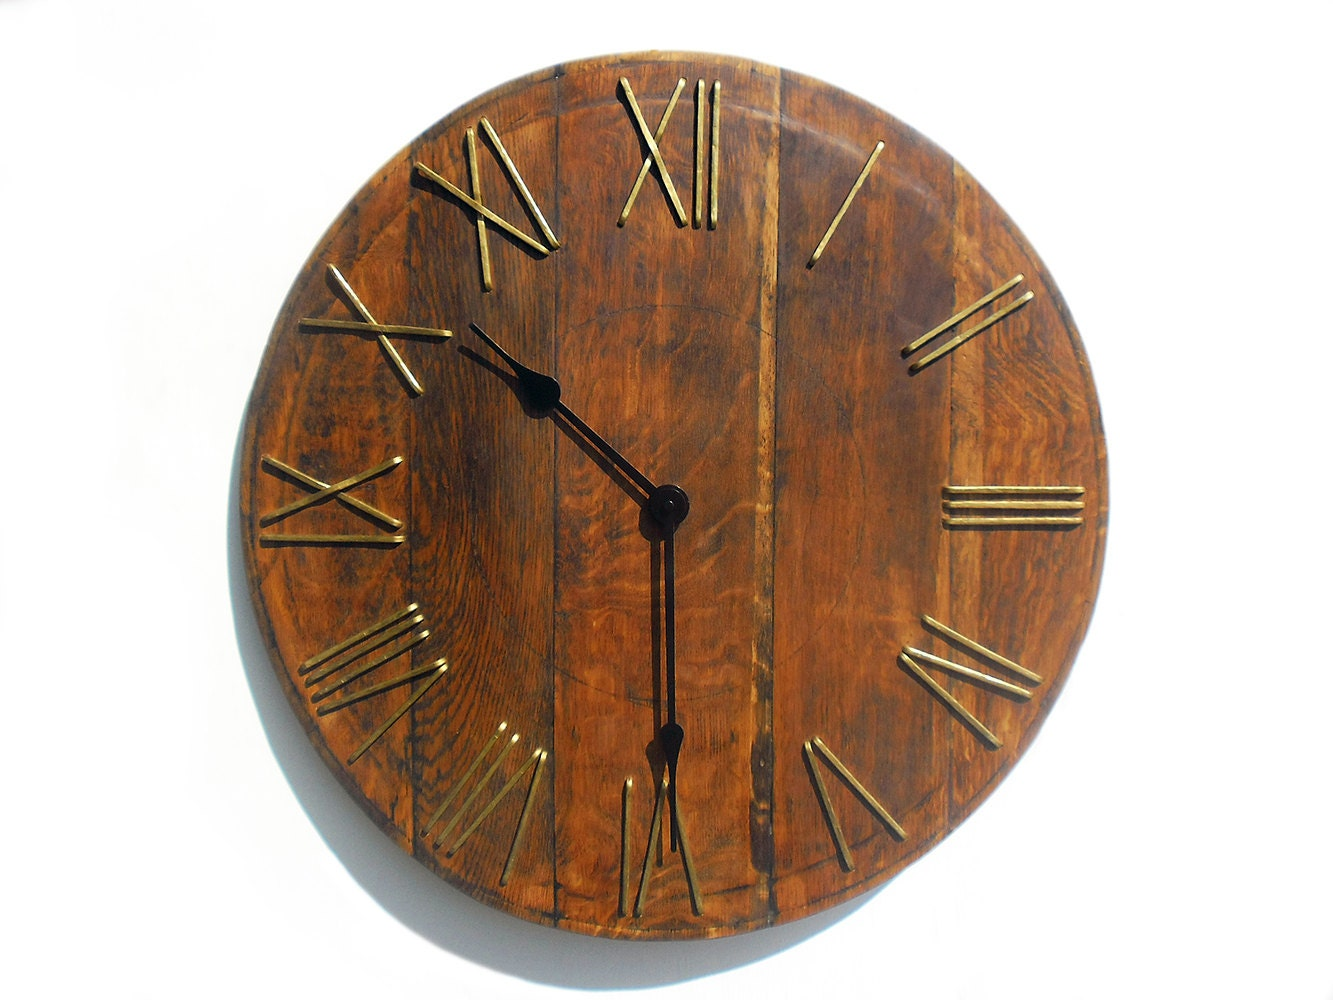 23 39 39 Large Rustic Wall Clock Unique Big Wall Clock